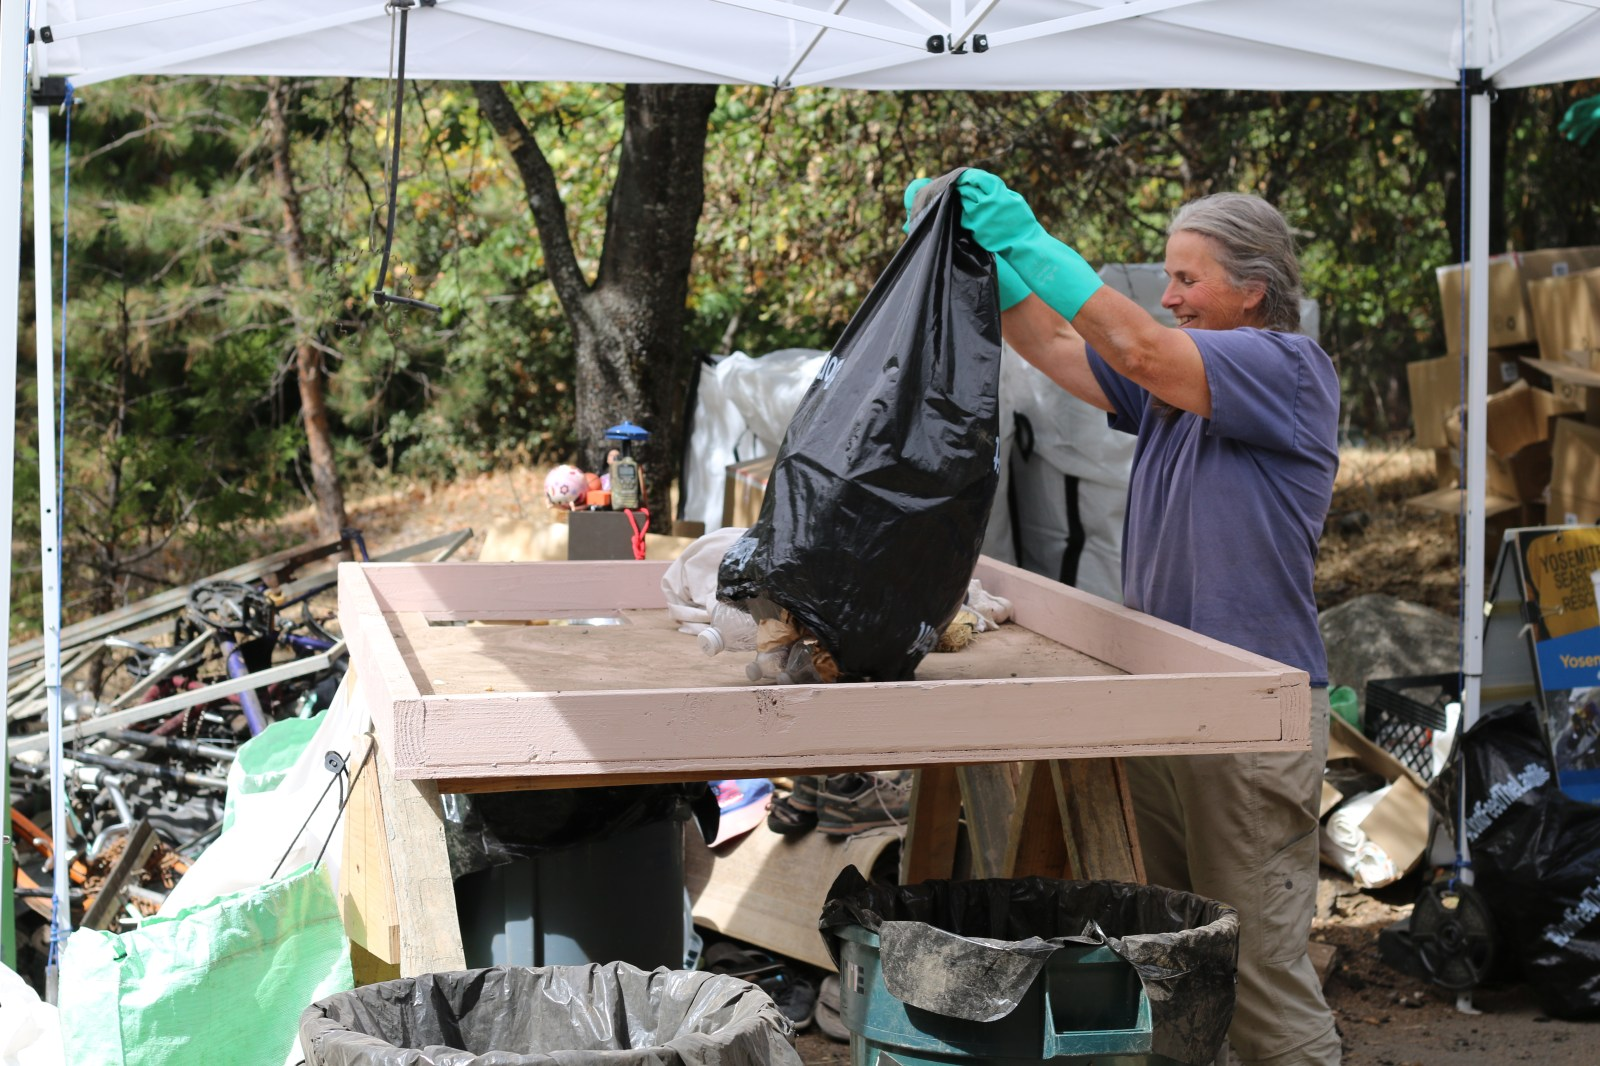 How 1 Man Organized the Removal of 1 Million Pounds of Trash From Yosemite